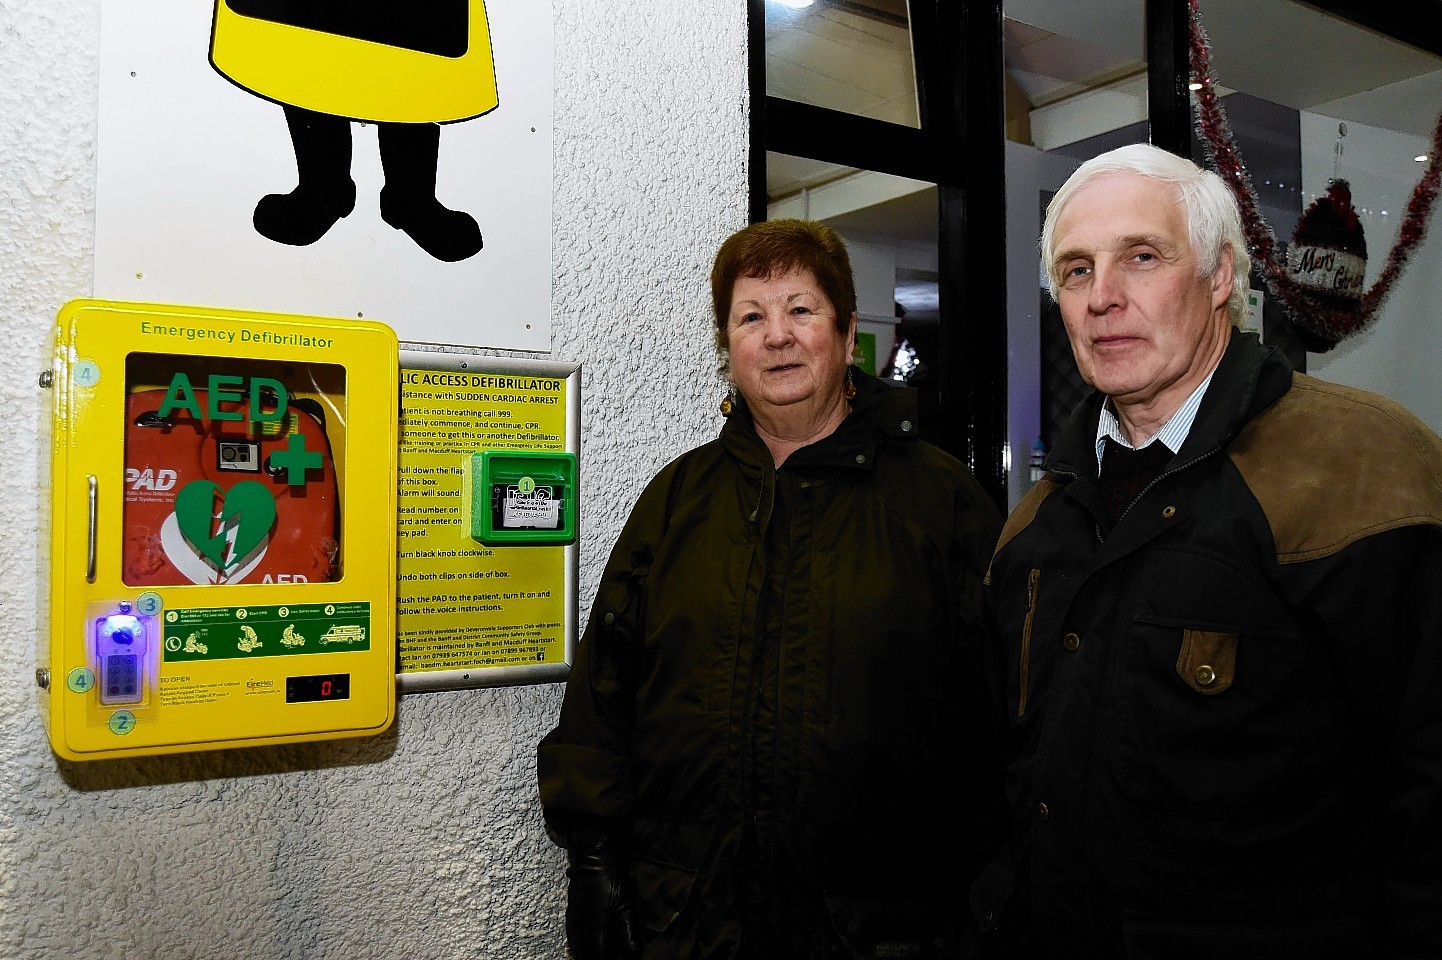 Ian Williams and a public access defib.